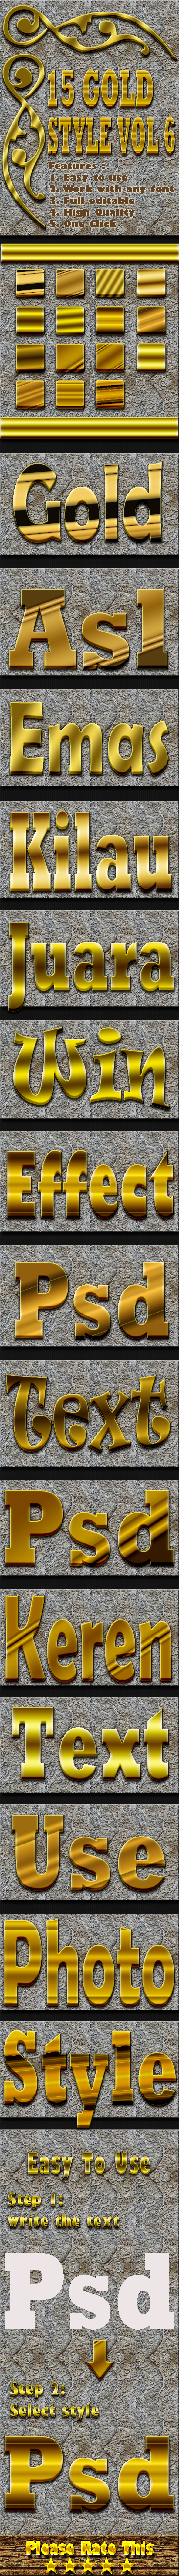 15 Gold Text Effect Style Vol 6